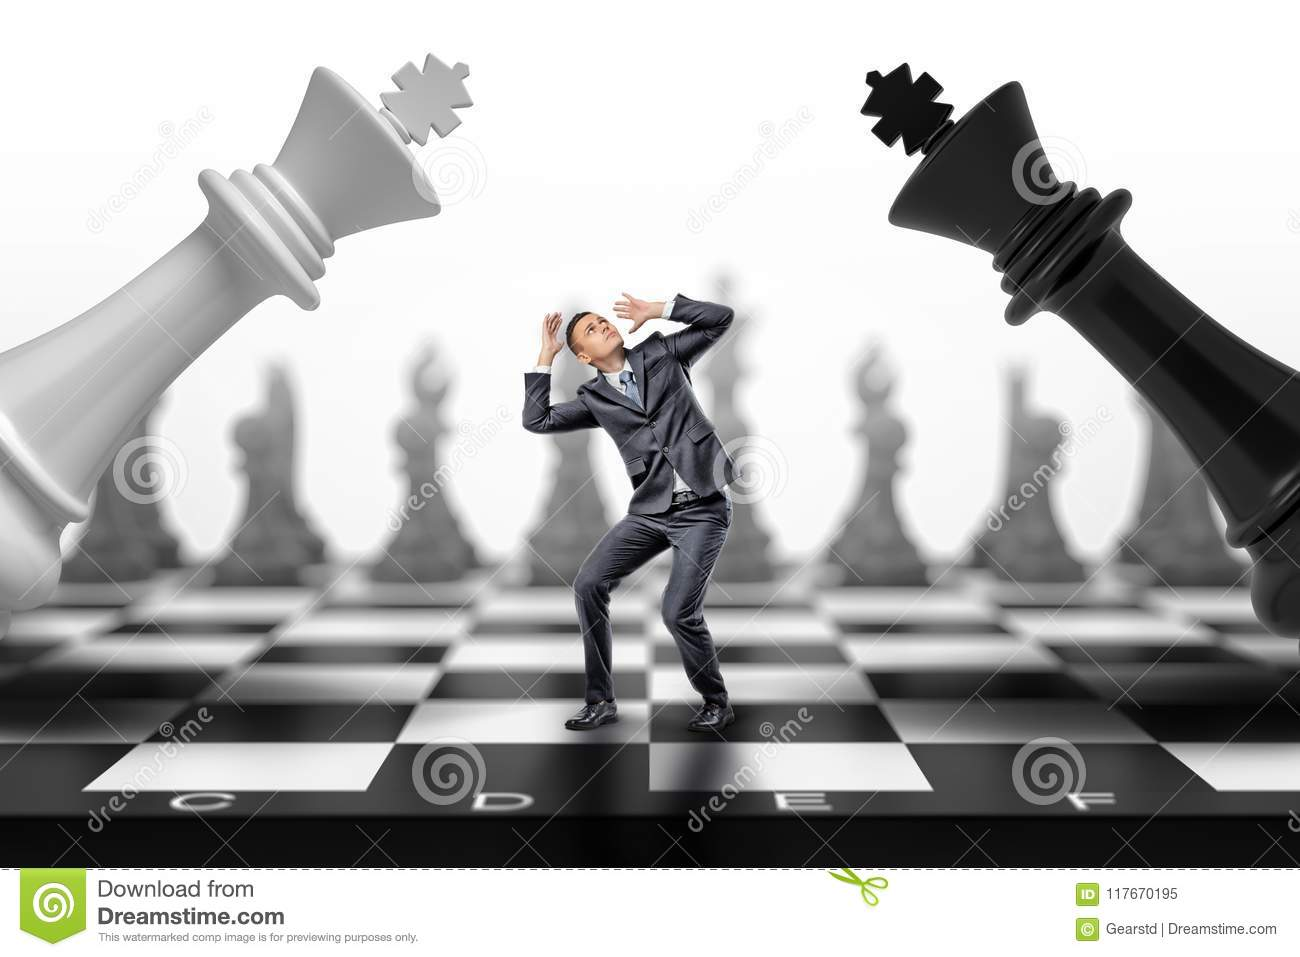 A scared businessman stands between a black and a white chess kings falling on him.